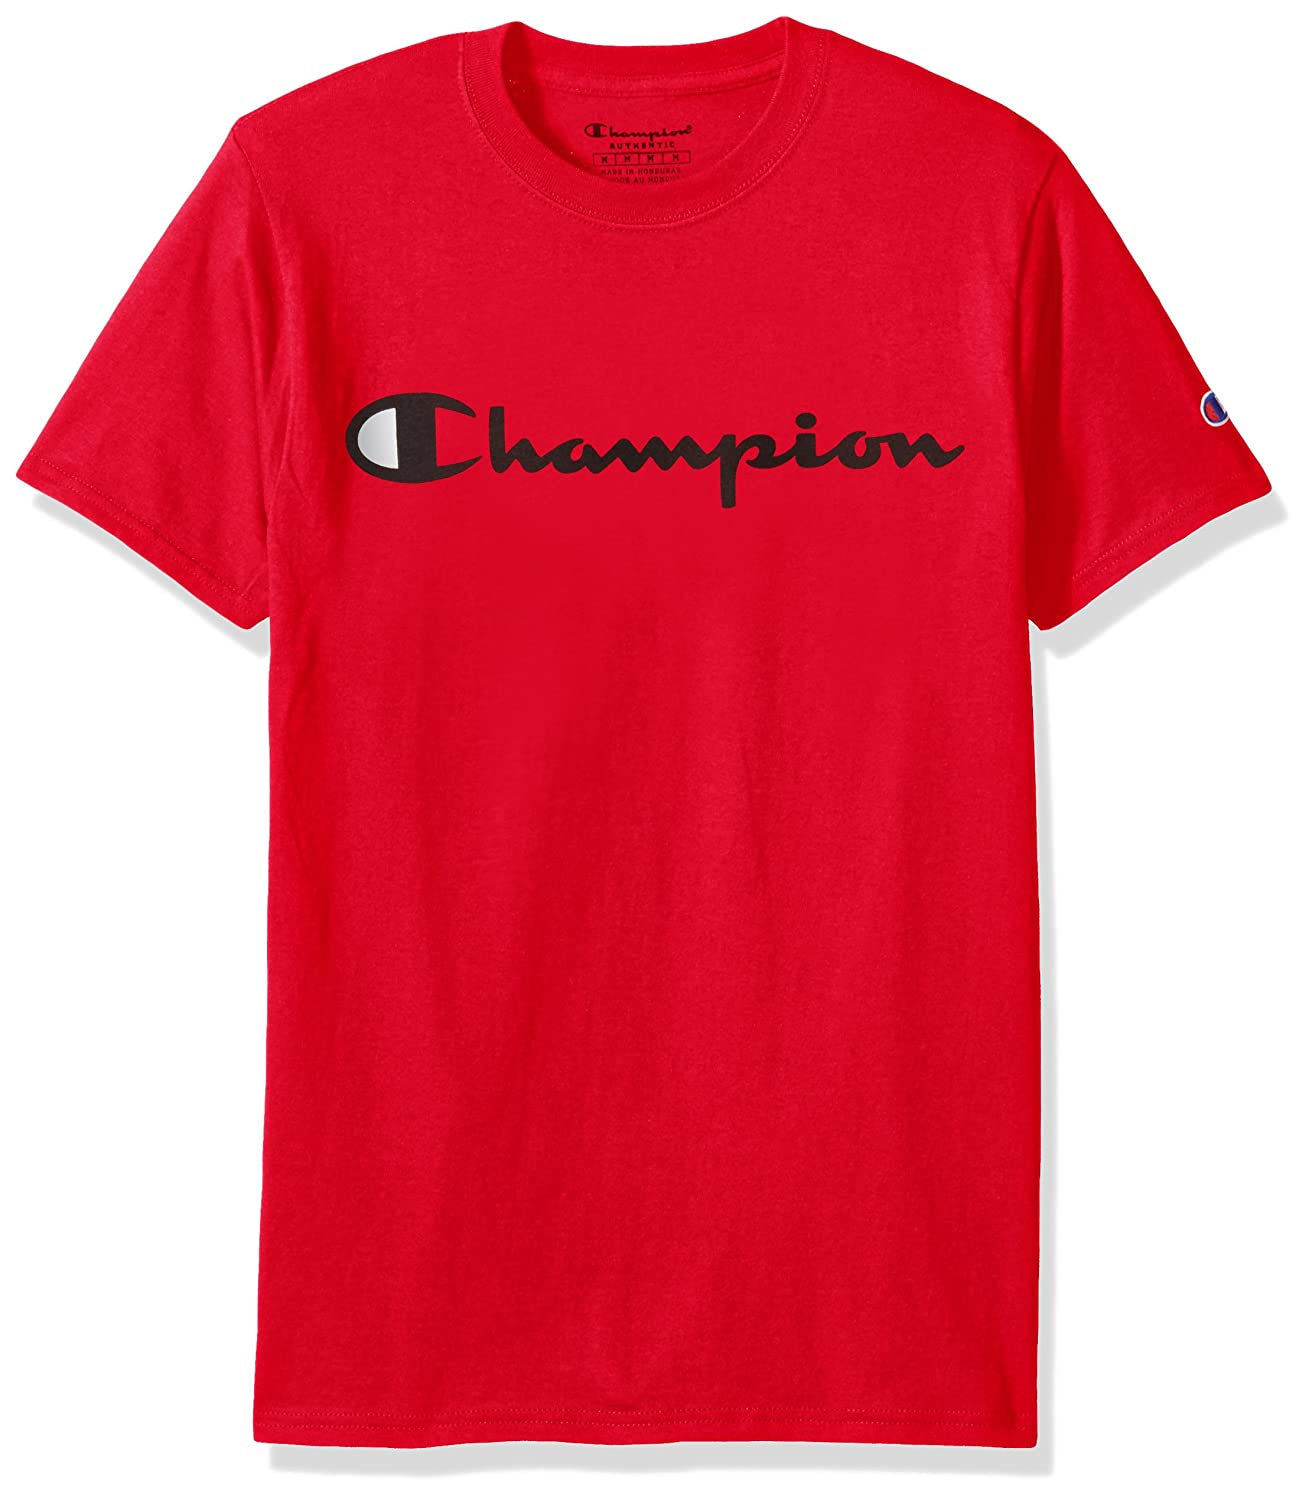 3879d3ea Champion fbb Men's Cotton Classic Graphic Jersey T-Shirt (Red, Medium):  Amazon.in: Clothing & Accessories